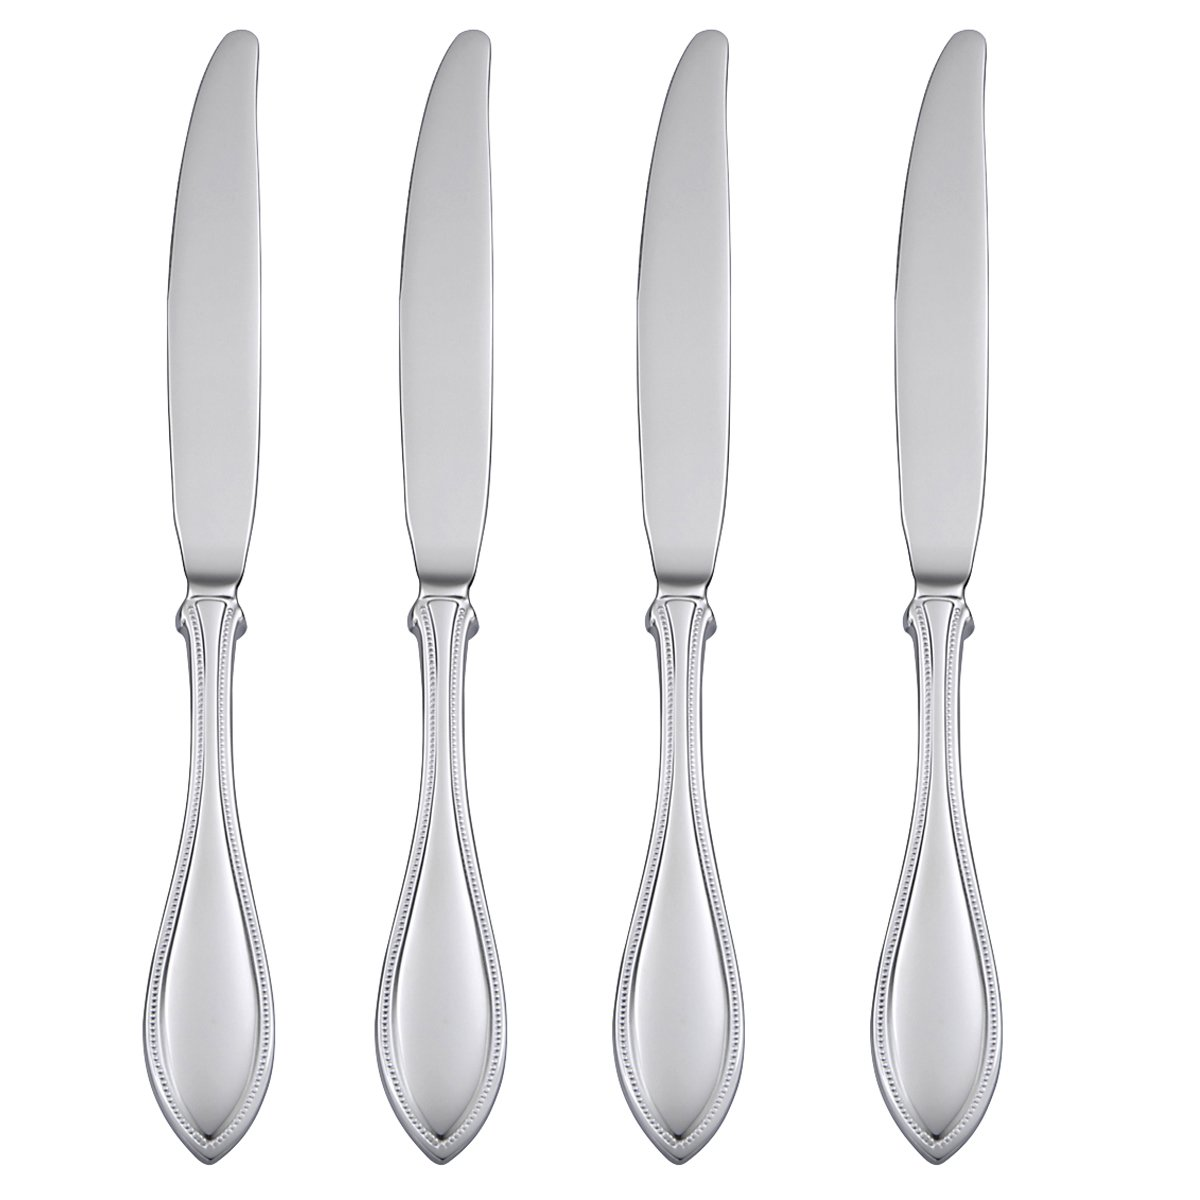 Oneida American Harmony Set of 4 Dinner Knives, Casual Flatware